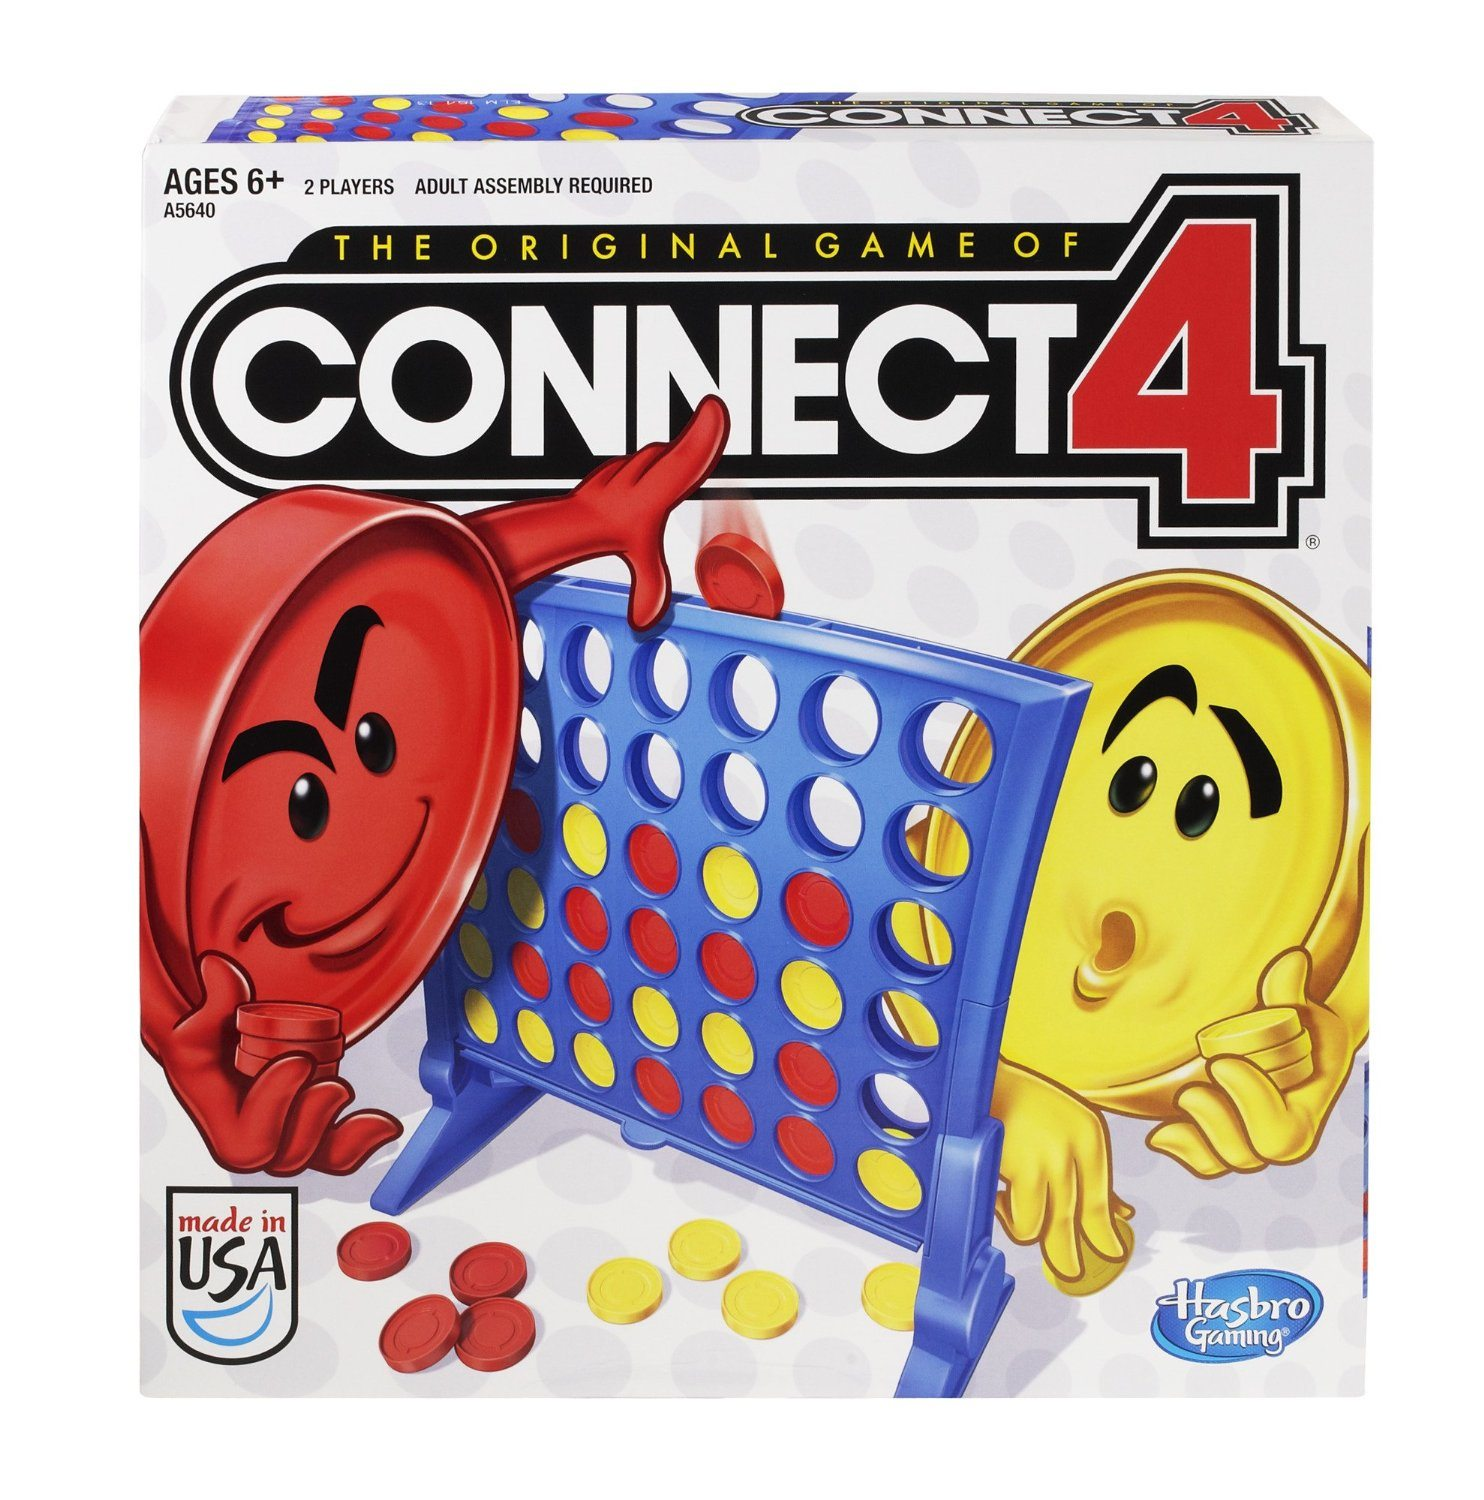 91L30nswRuL. SL1500  - Hasbro Connect 4 Game